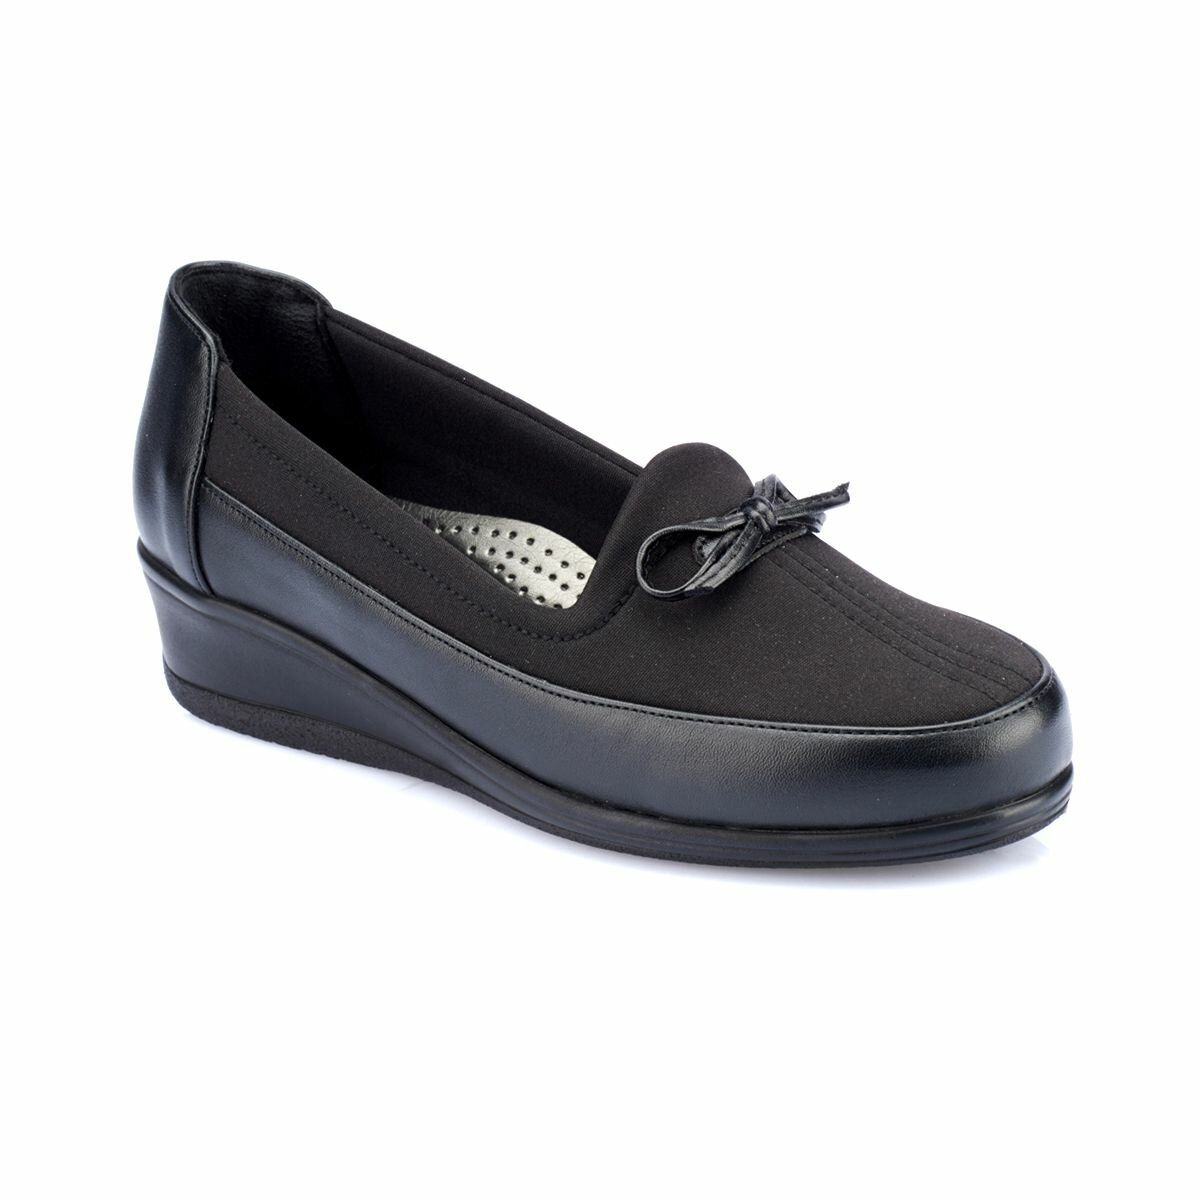 FLO 82.150034.Z Black Women Shoes Polaris